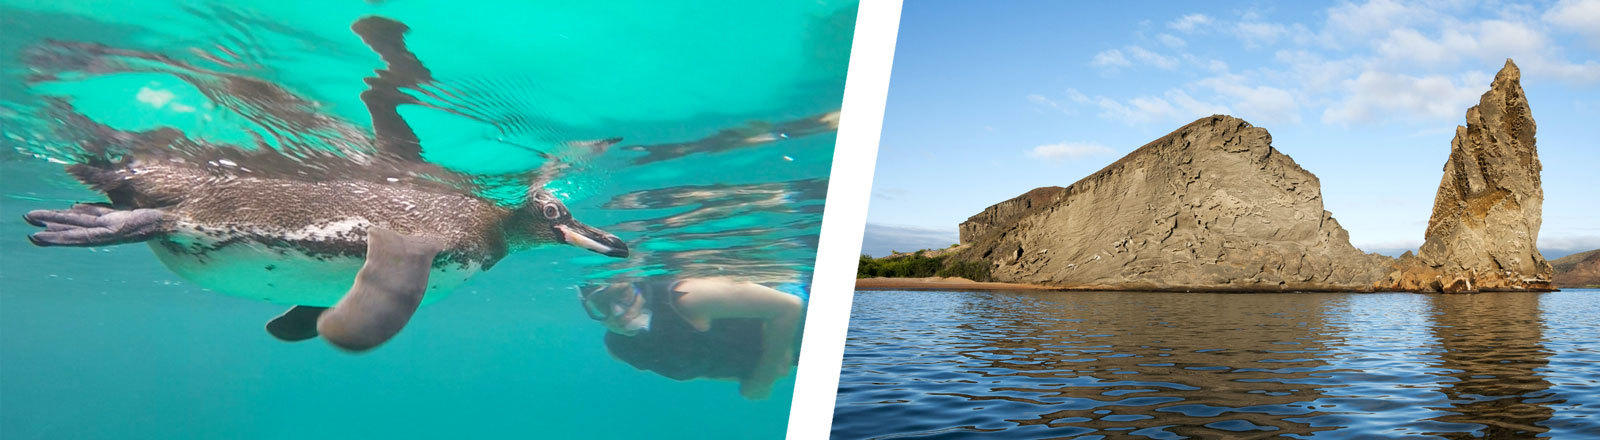 Collage: Frau schwimmt mit Pinguin, Pinnacle Rock, Galapagos